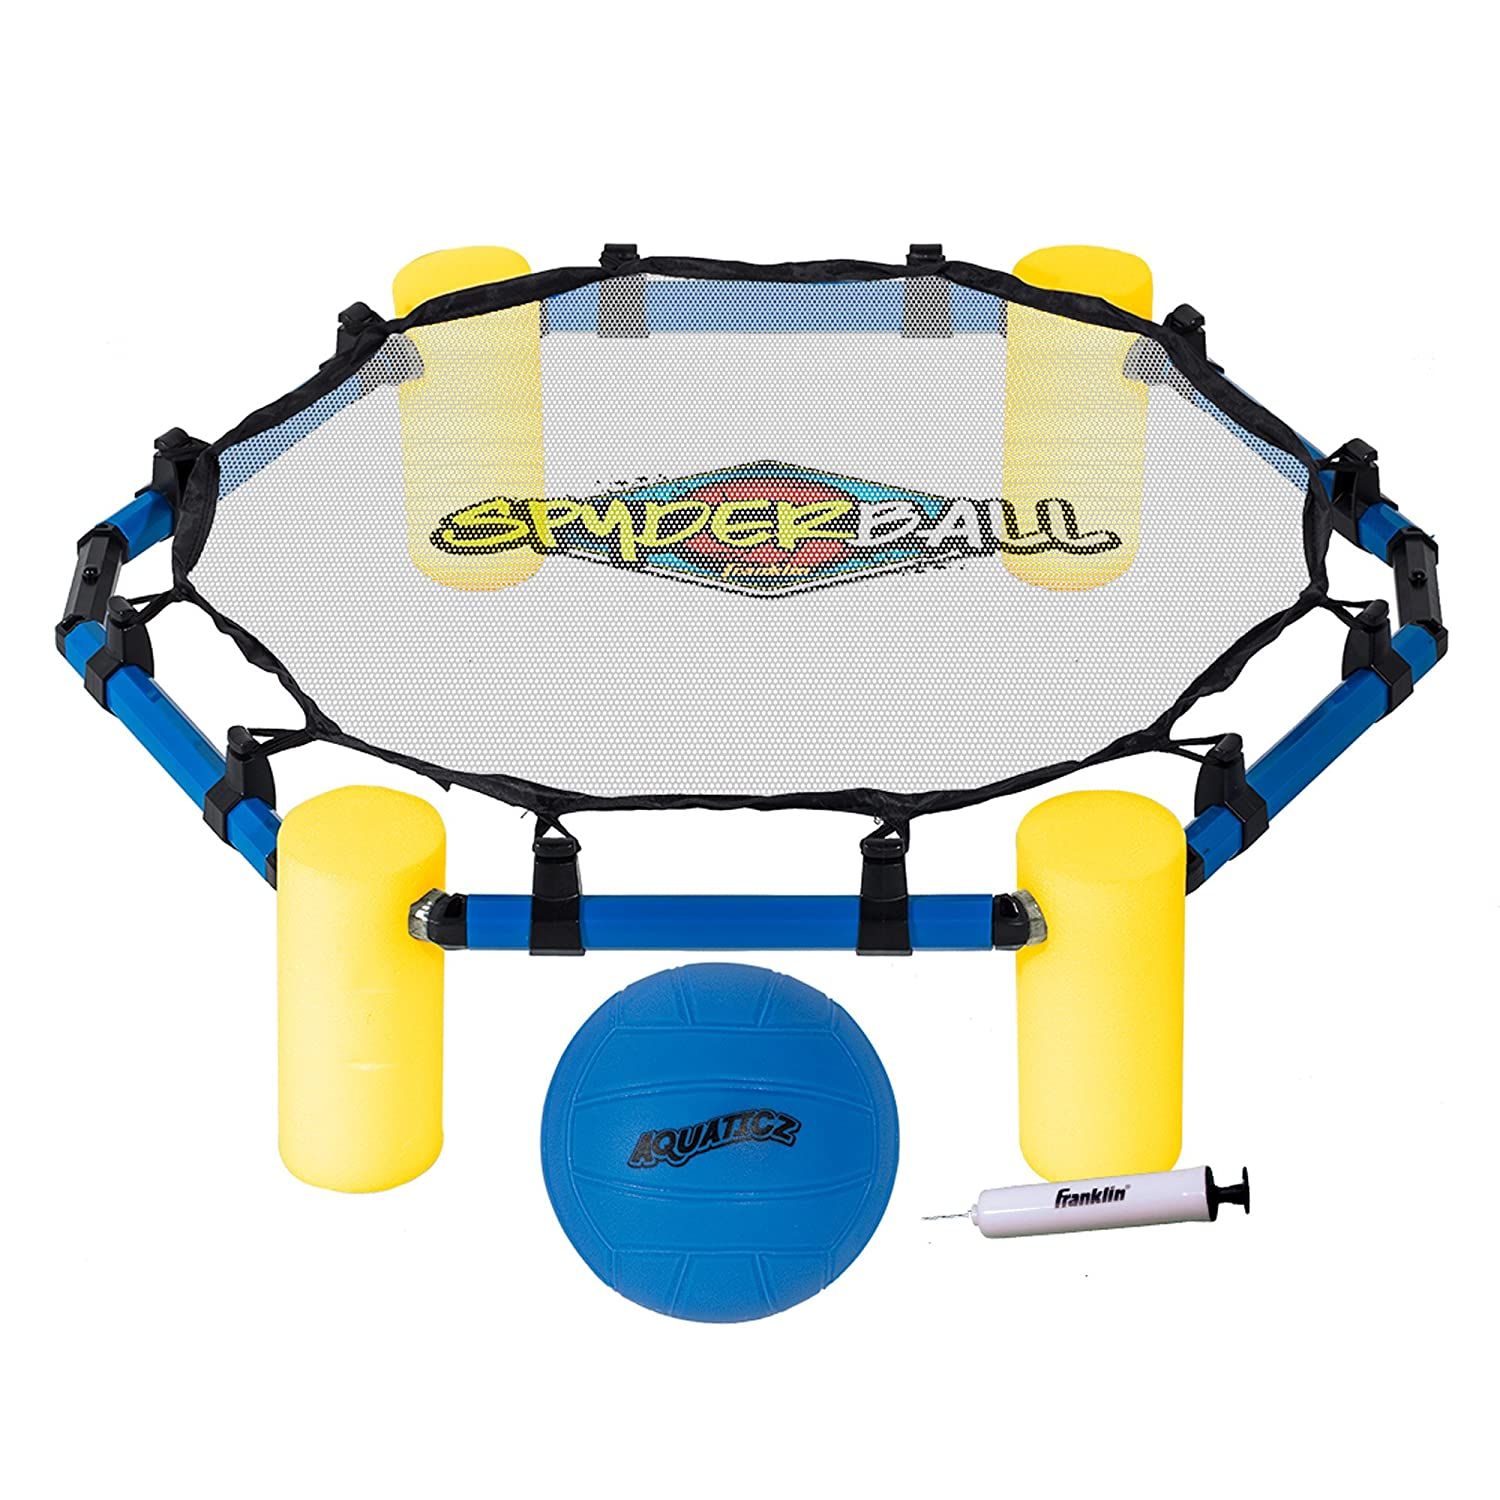 Amazon Franklin Sports Aquaticz Spyderball Toys & Games